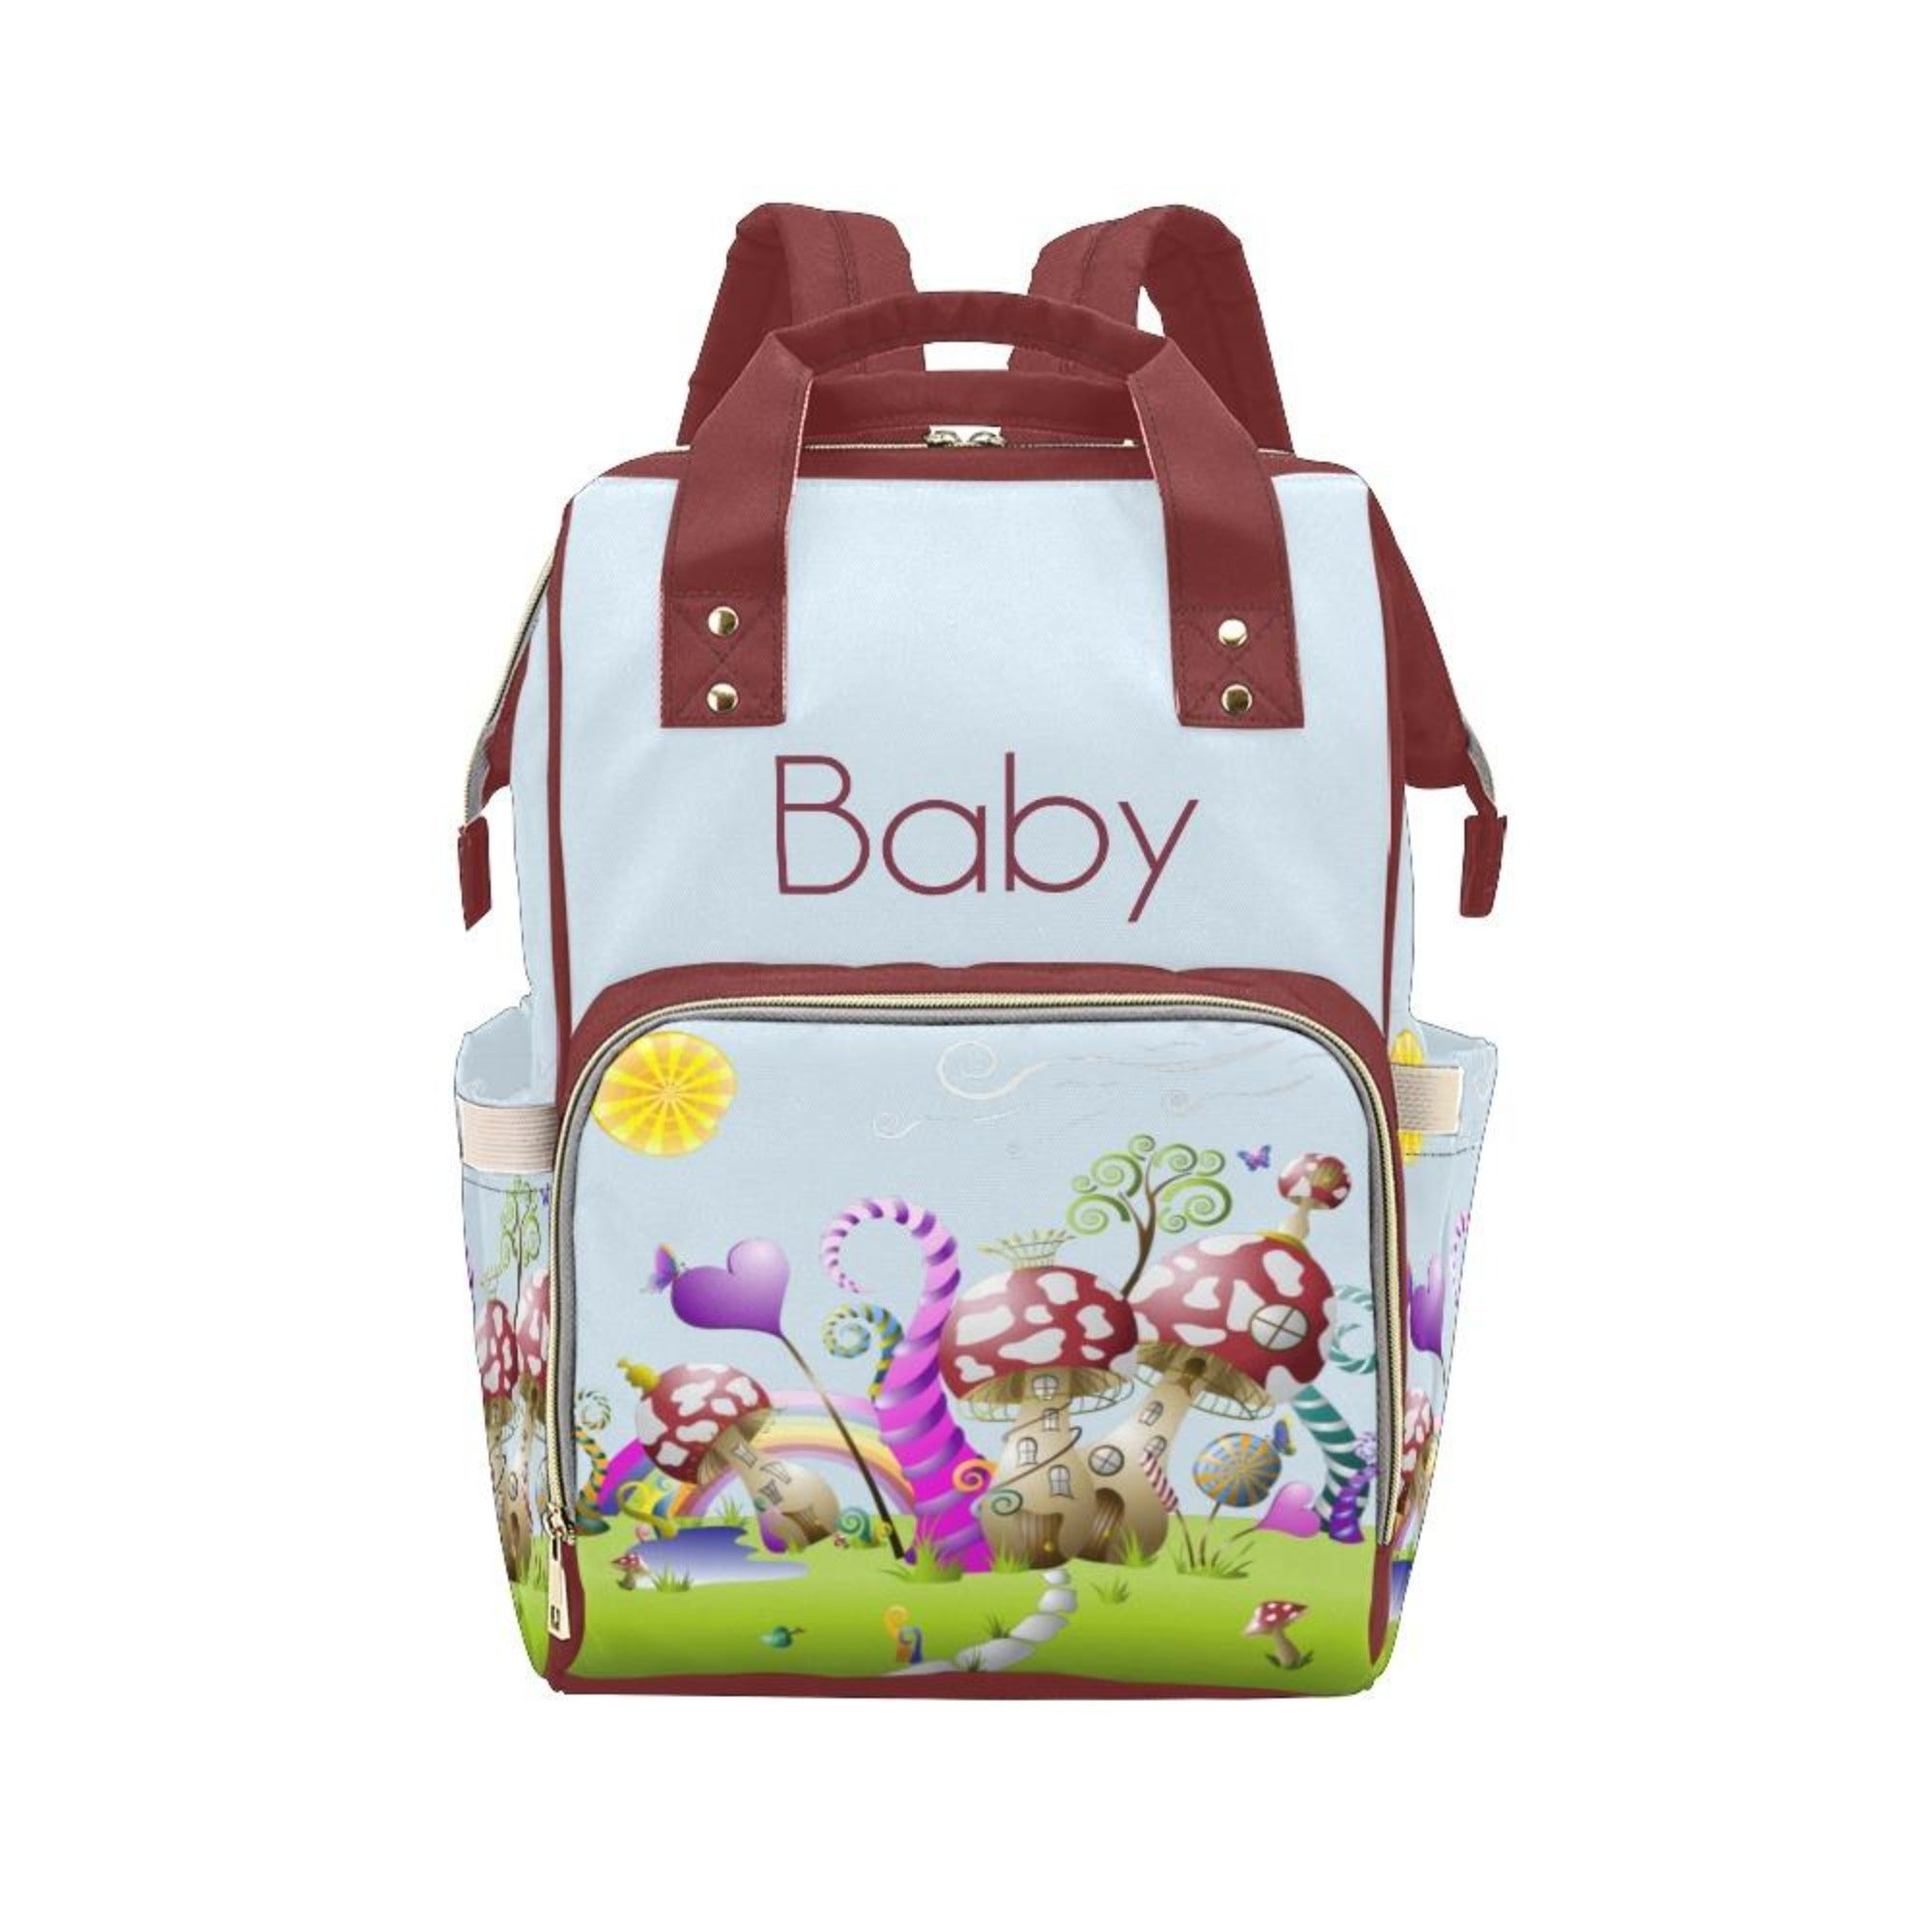 Personalize Optional - Designer Baby Bag With Gnome Mushroom Village - Waterproof Multifunction Backpack